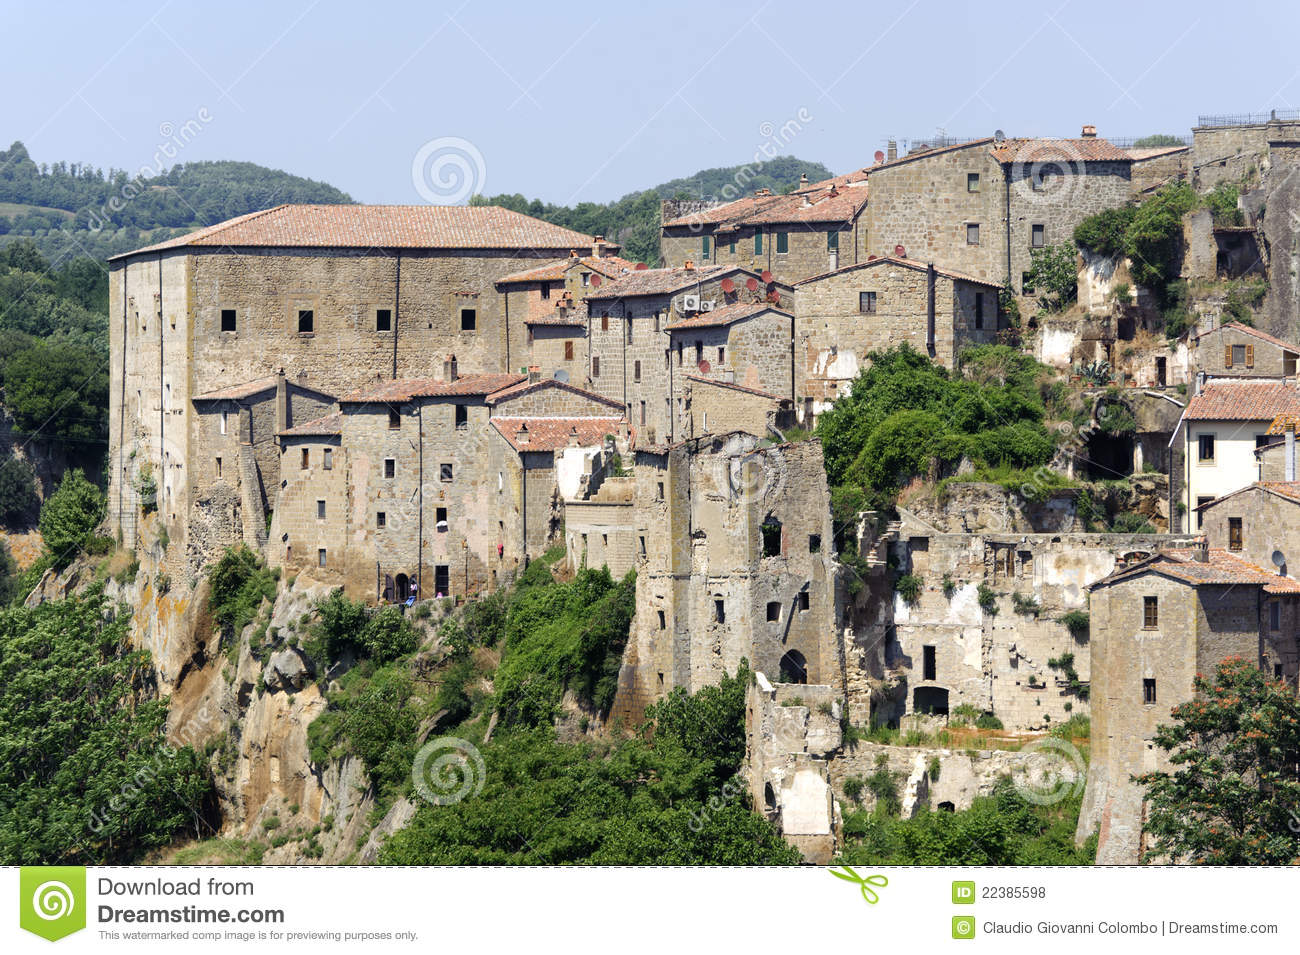 Sorano Italy  city images : Sorano Grosseto, Tuscany, Italy , panoramic view of the medieval town ...